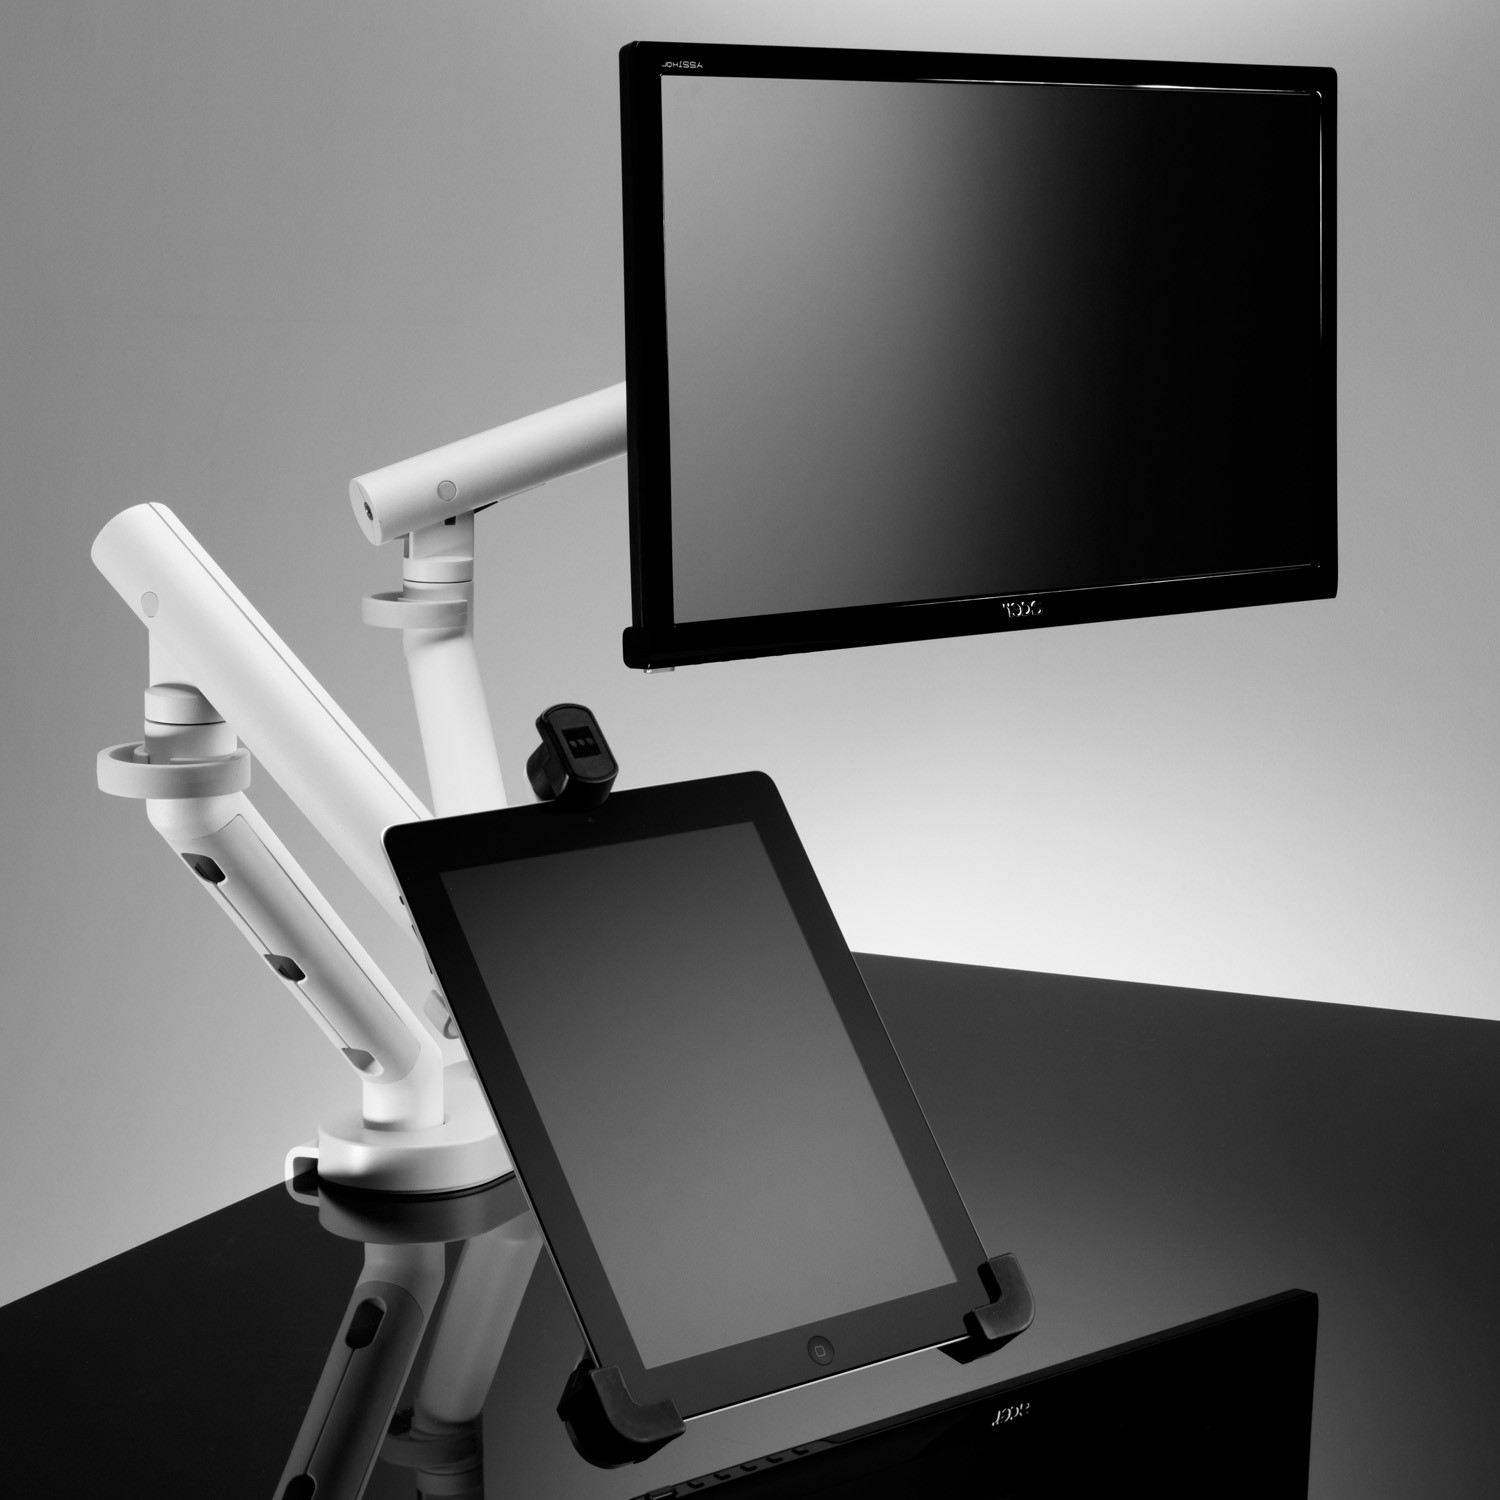 Flo Monitor Arms Holds iPads